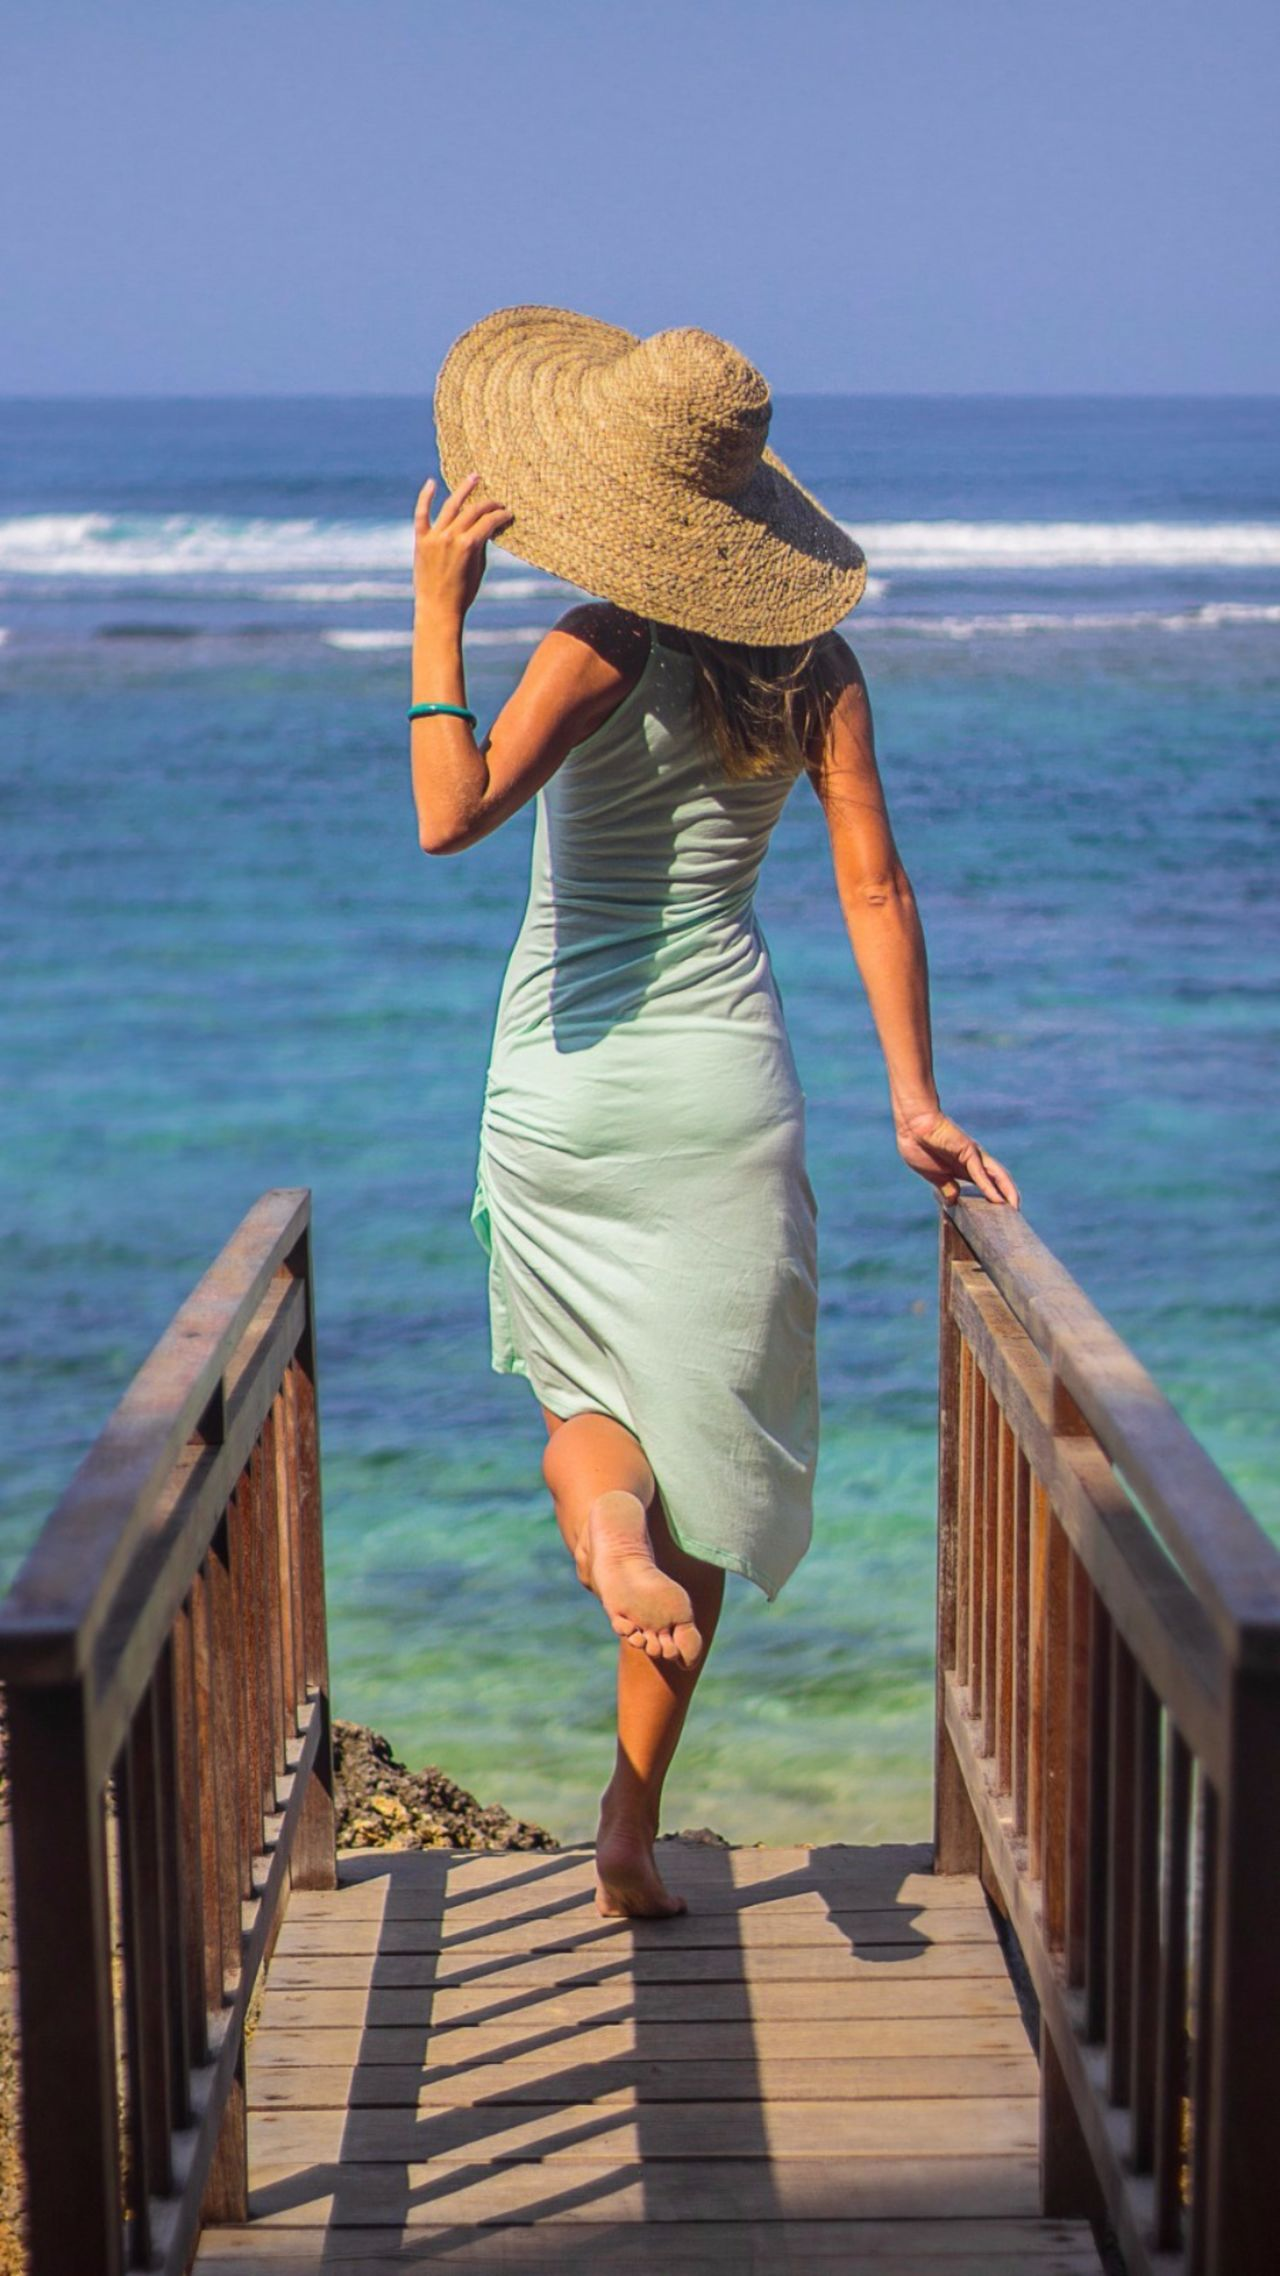 MeMyself&I Life Is A Beach Sea And Sky Sea View Blue Wave Blue Water Blue Sea Sky And Clouds Beachphotography Beach Bridge Hat Girl Life Is Beautiful Amazingindonesia Bali, Indonesia Seaandsun Woman Women Of EyeEm People Photography Midday Sunlight Ocean View Seascape